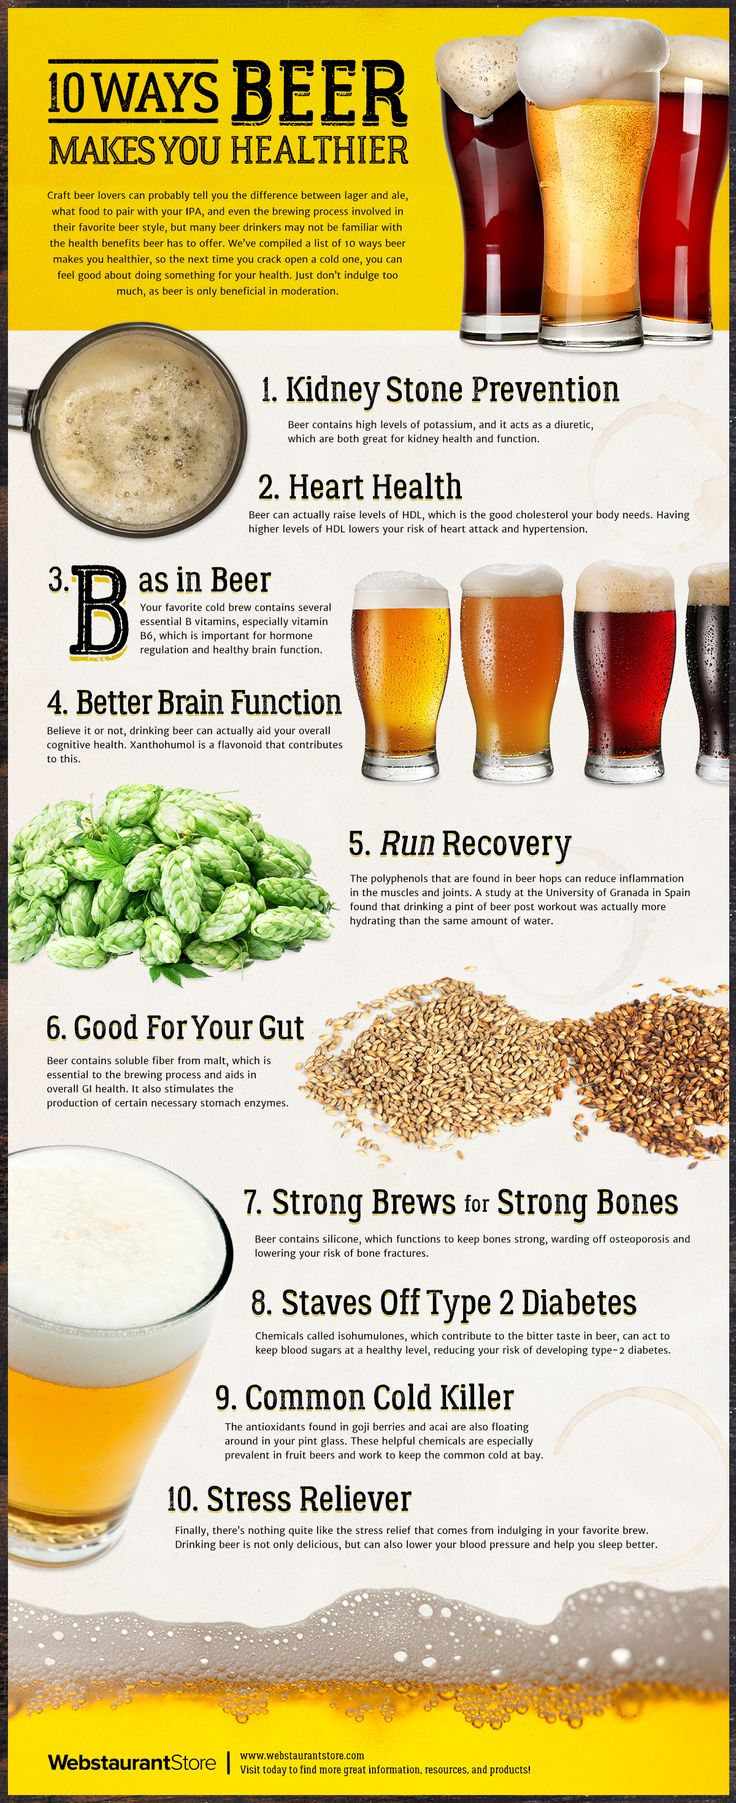 10 Ways Beer Makes You Healthier                                                                                                                                                      More  #craftbeer #beer